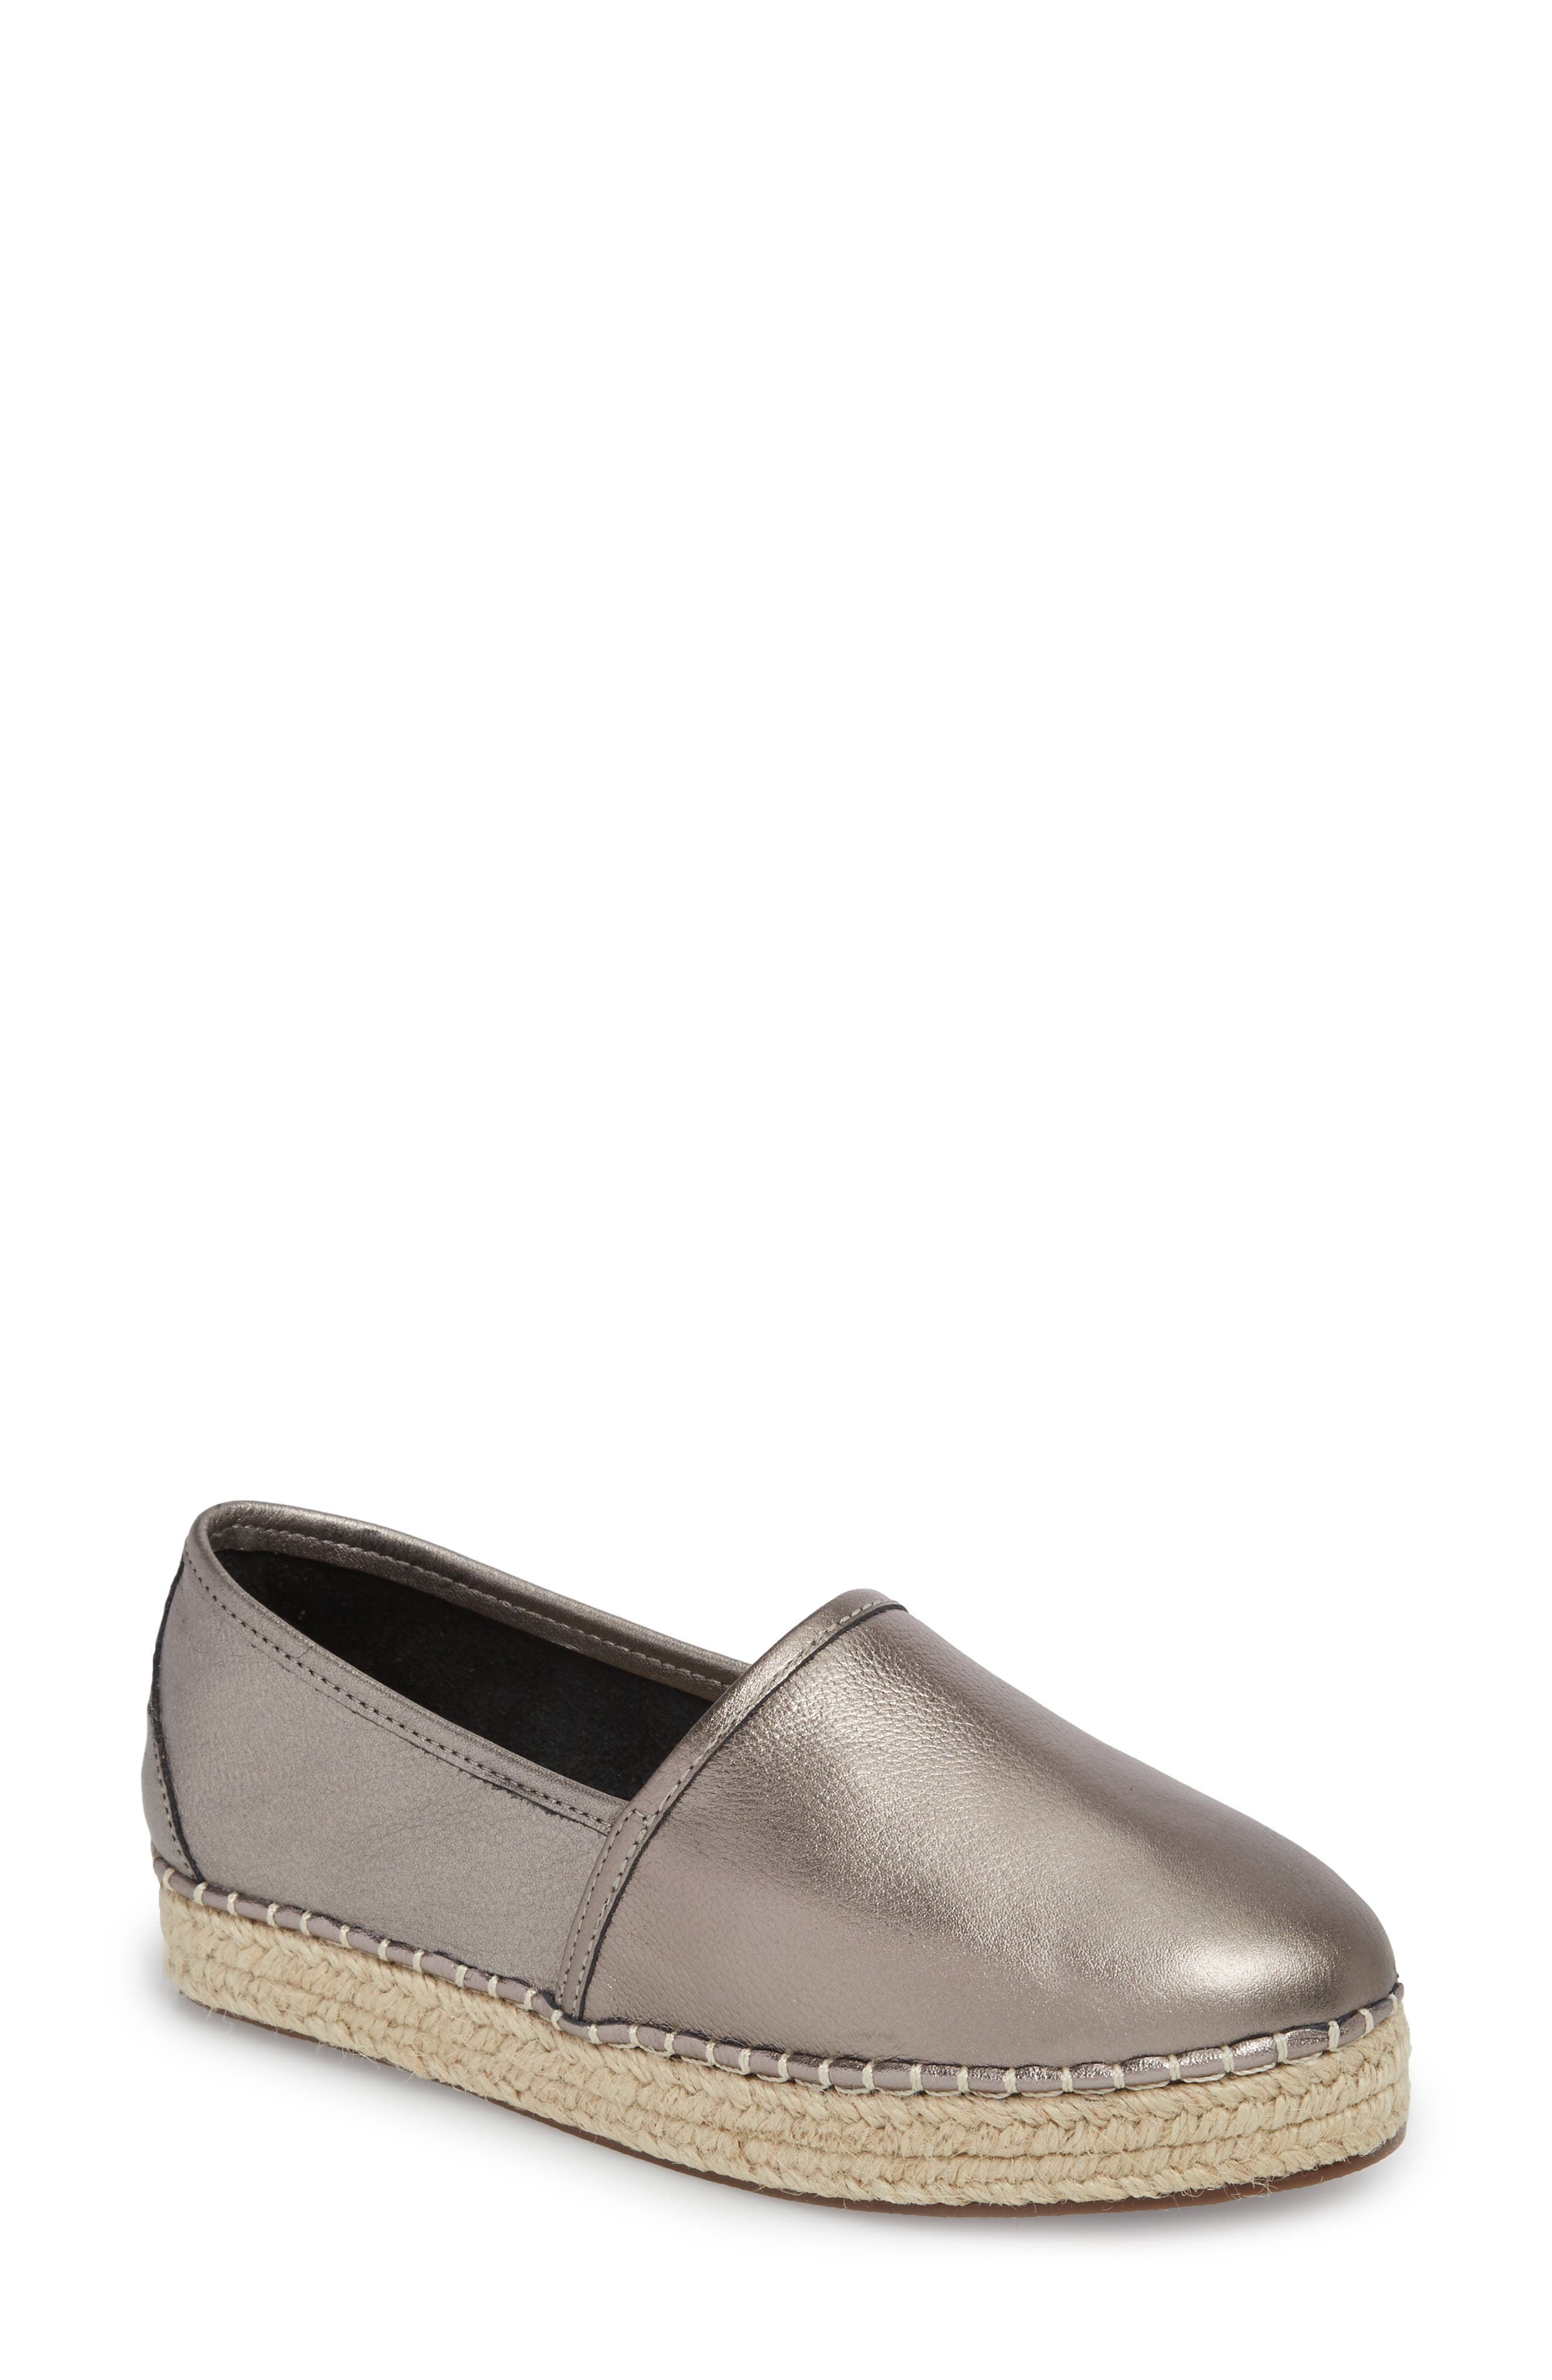 Boyd Espadrille Sneaker,                             Main thumbnail 1, color,                             GUNMETAL LEATHER